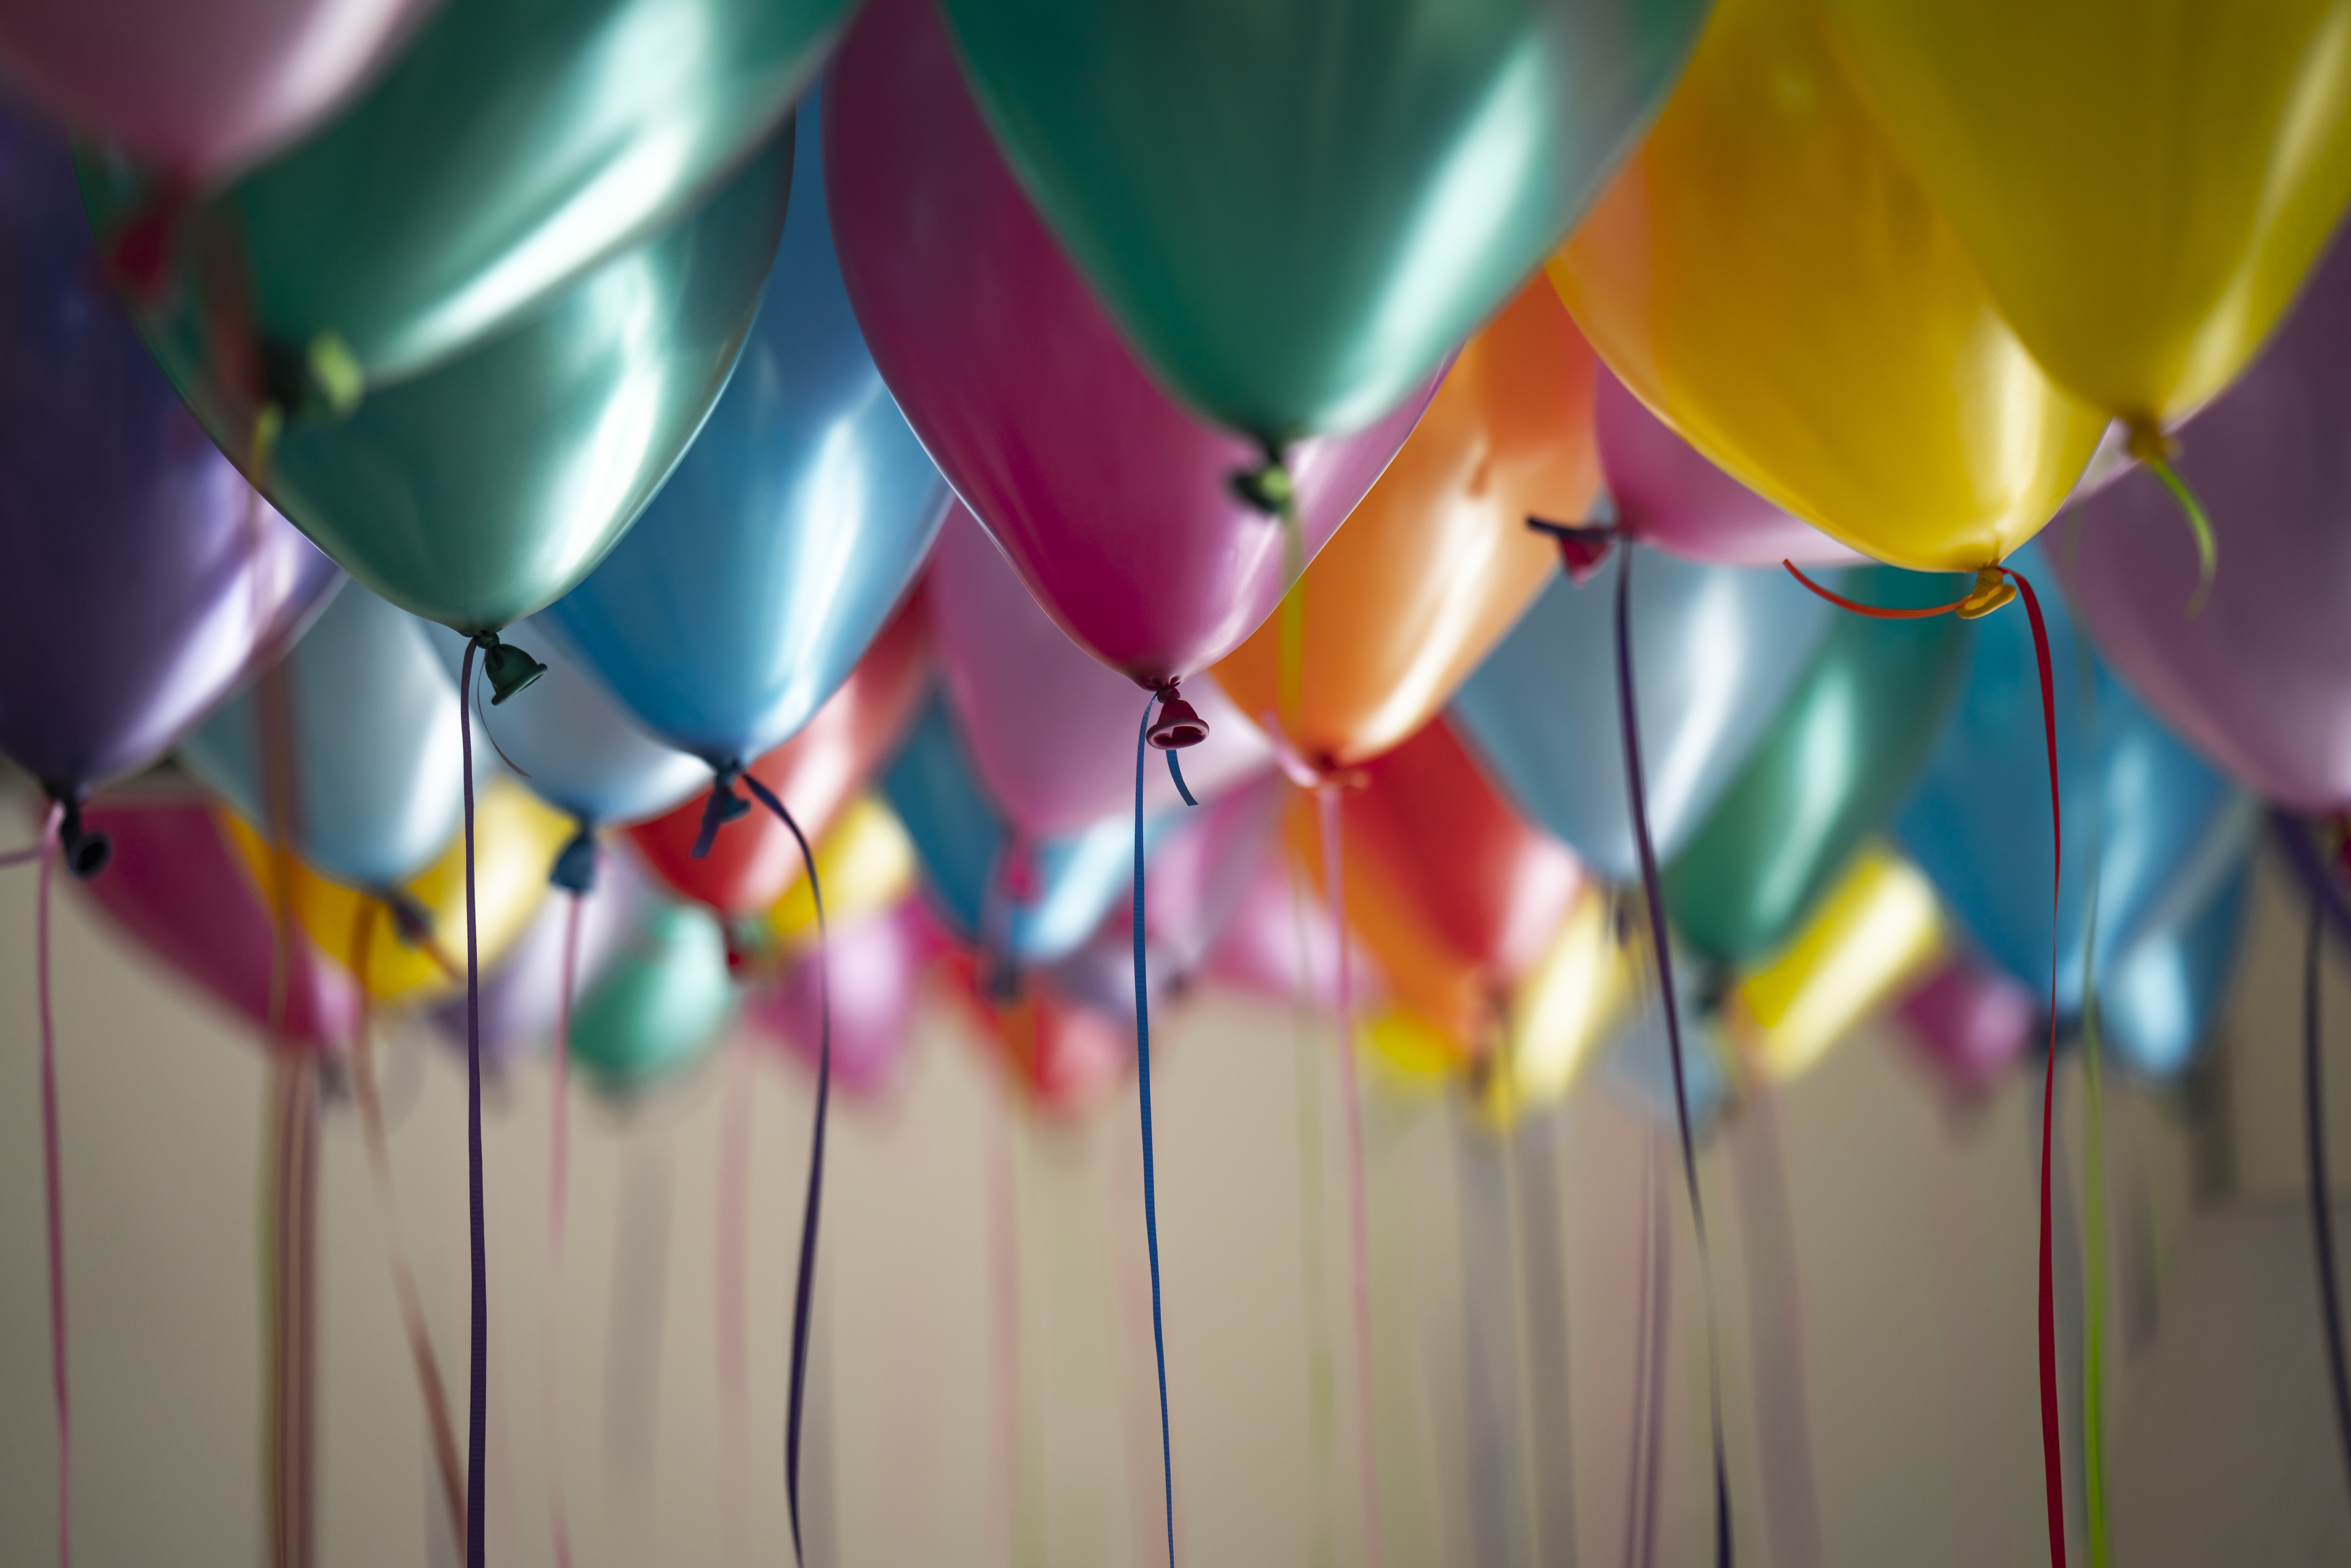 birthday wallpapers  free hd download  500  hq